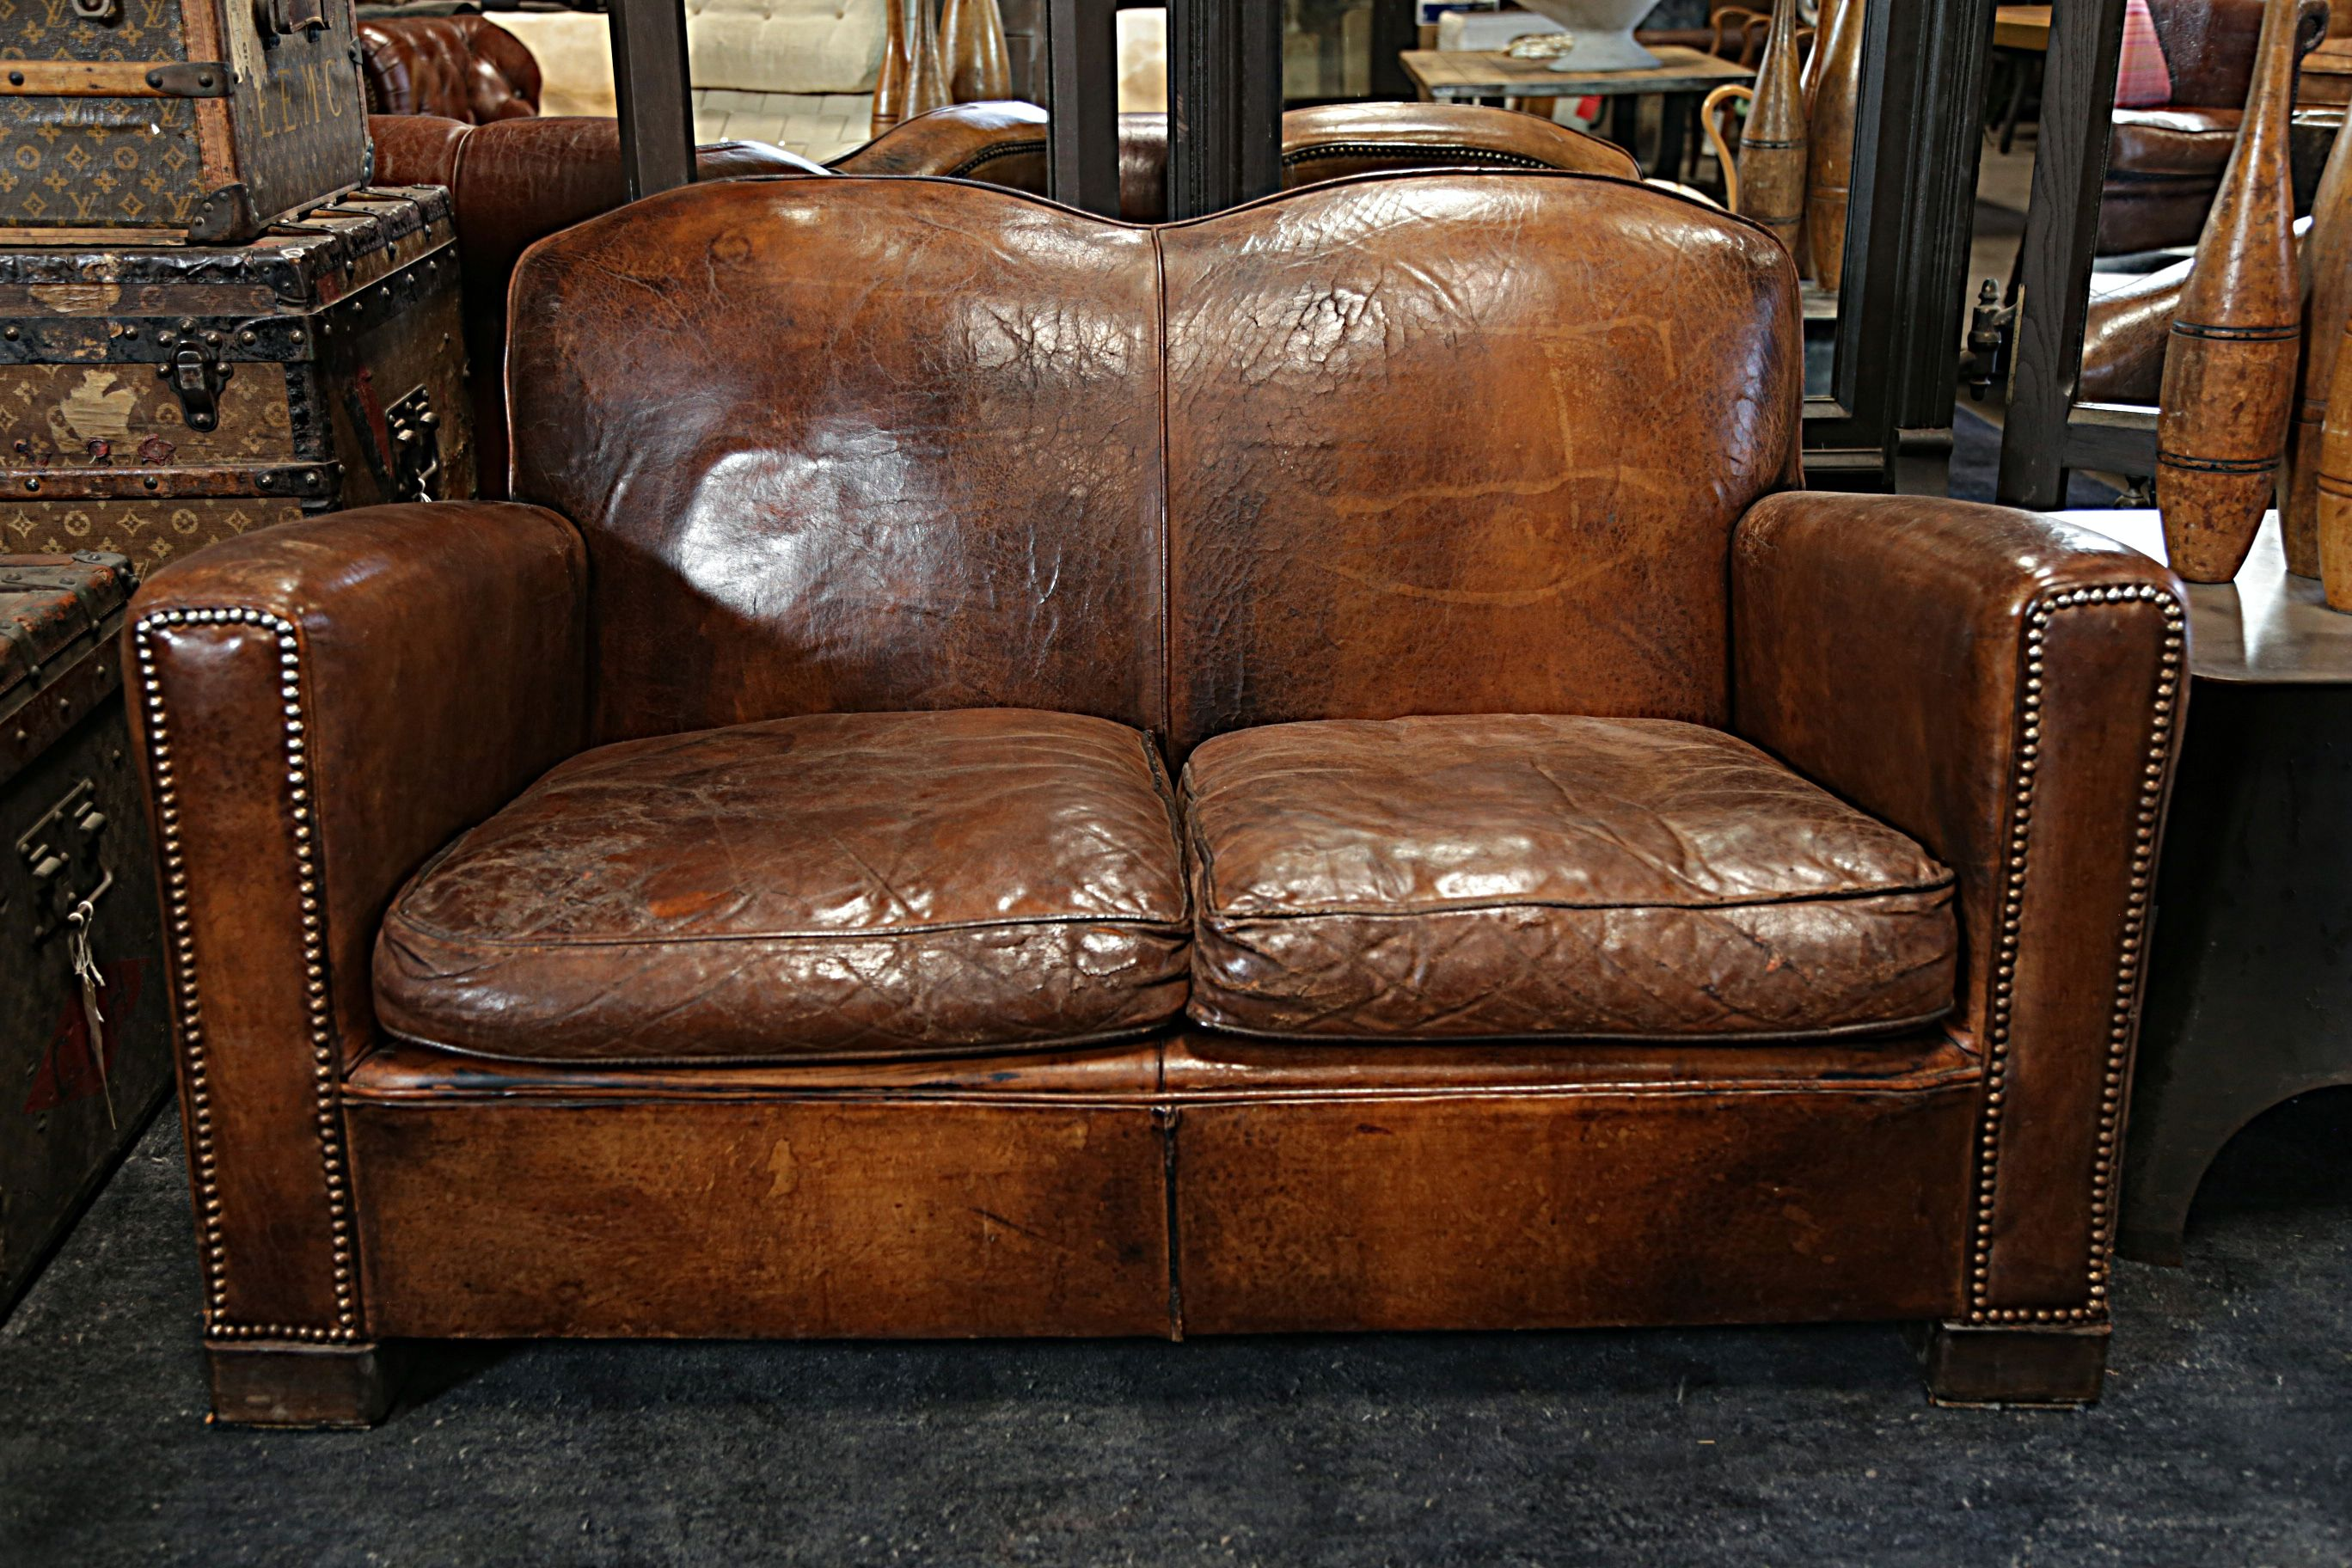 A gorgeous vintage leather couch, perfectly aged. http://bdantiques.com/